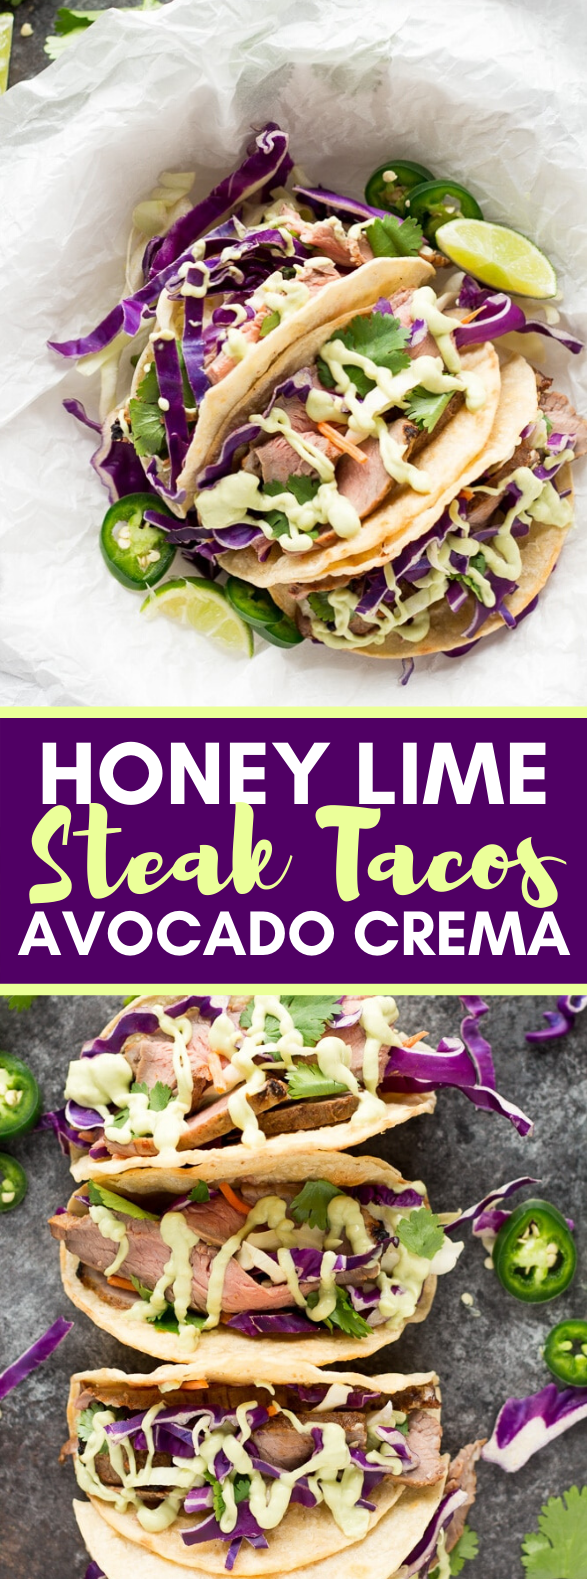 HONEY LIME STEAK TACOS WITH AVOCADO CREMA #lunch #mexicanfood